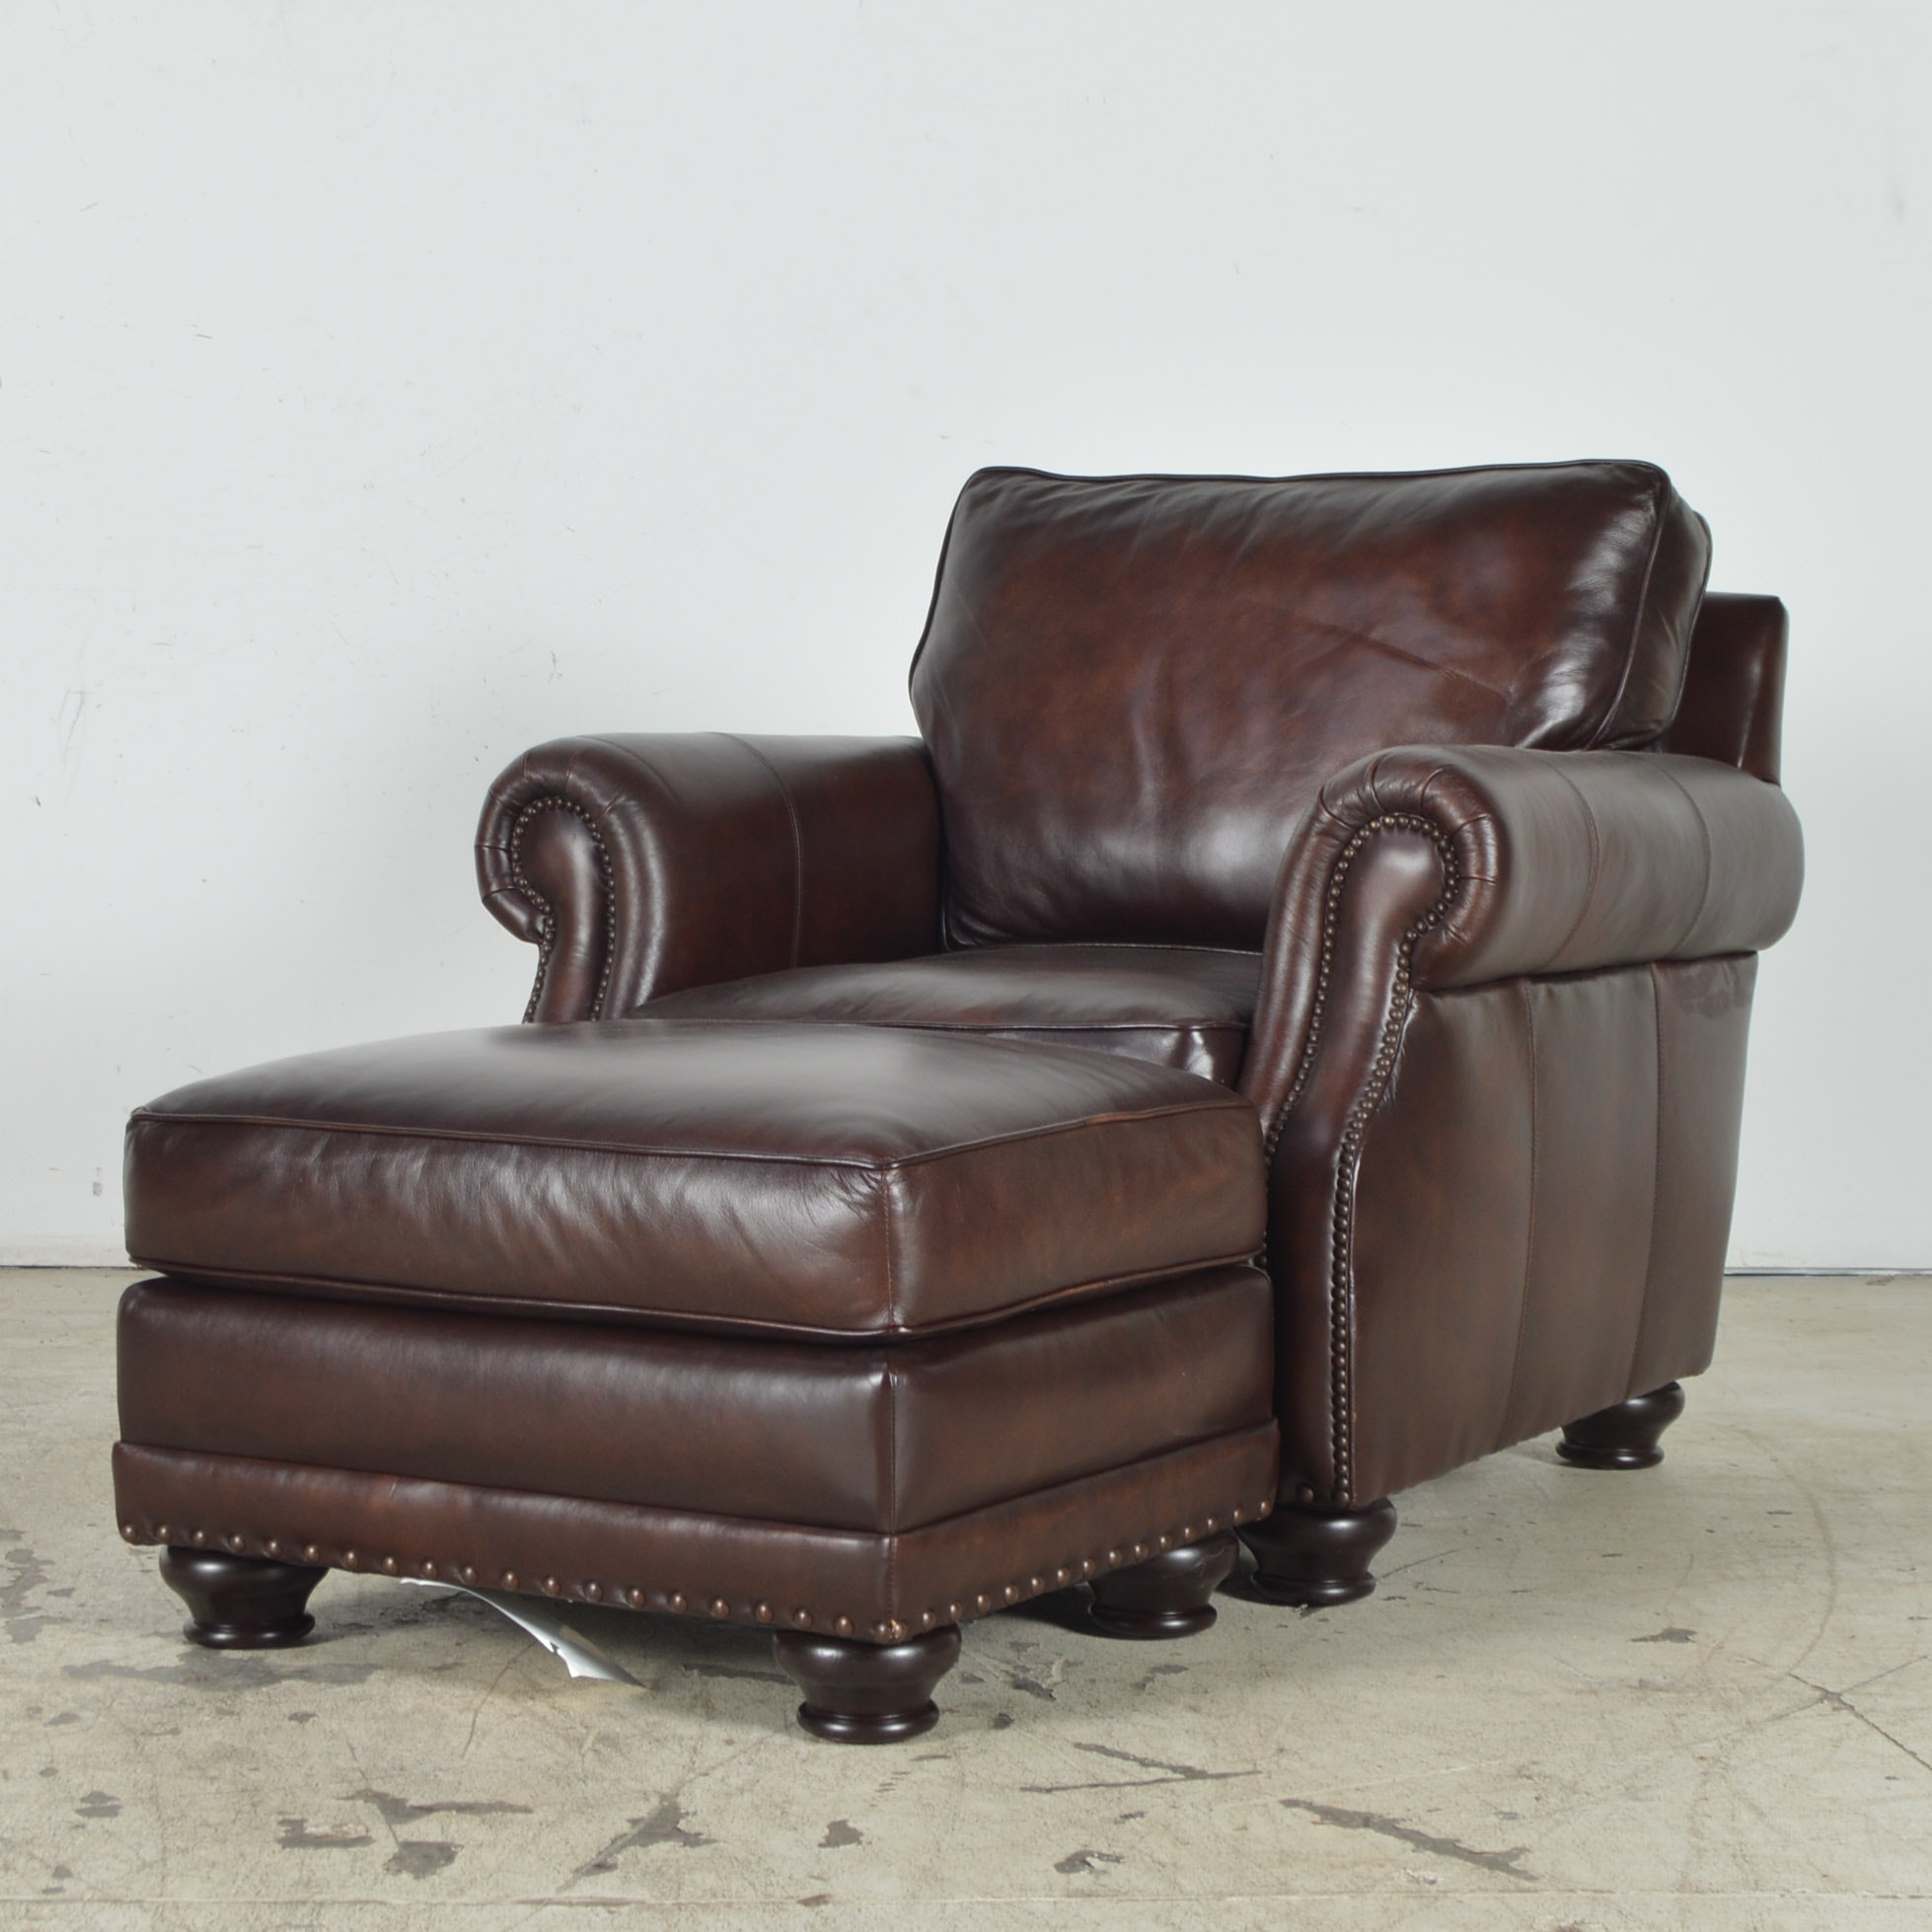 High Quality Havertys Furniture Brown Leather Armchair With Ottoman ...